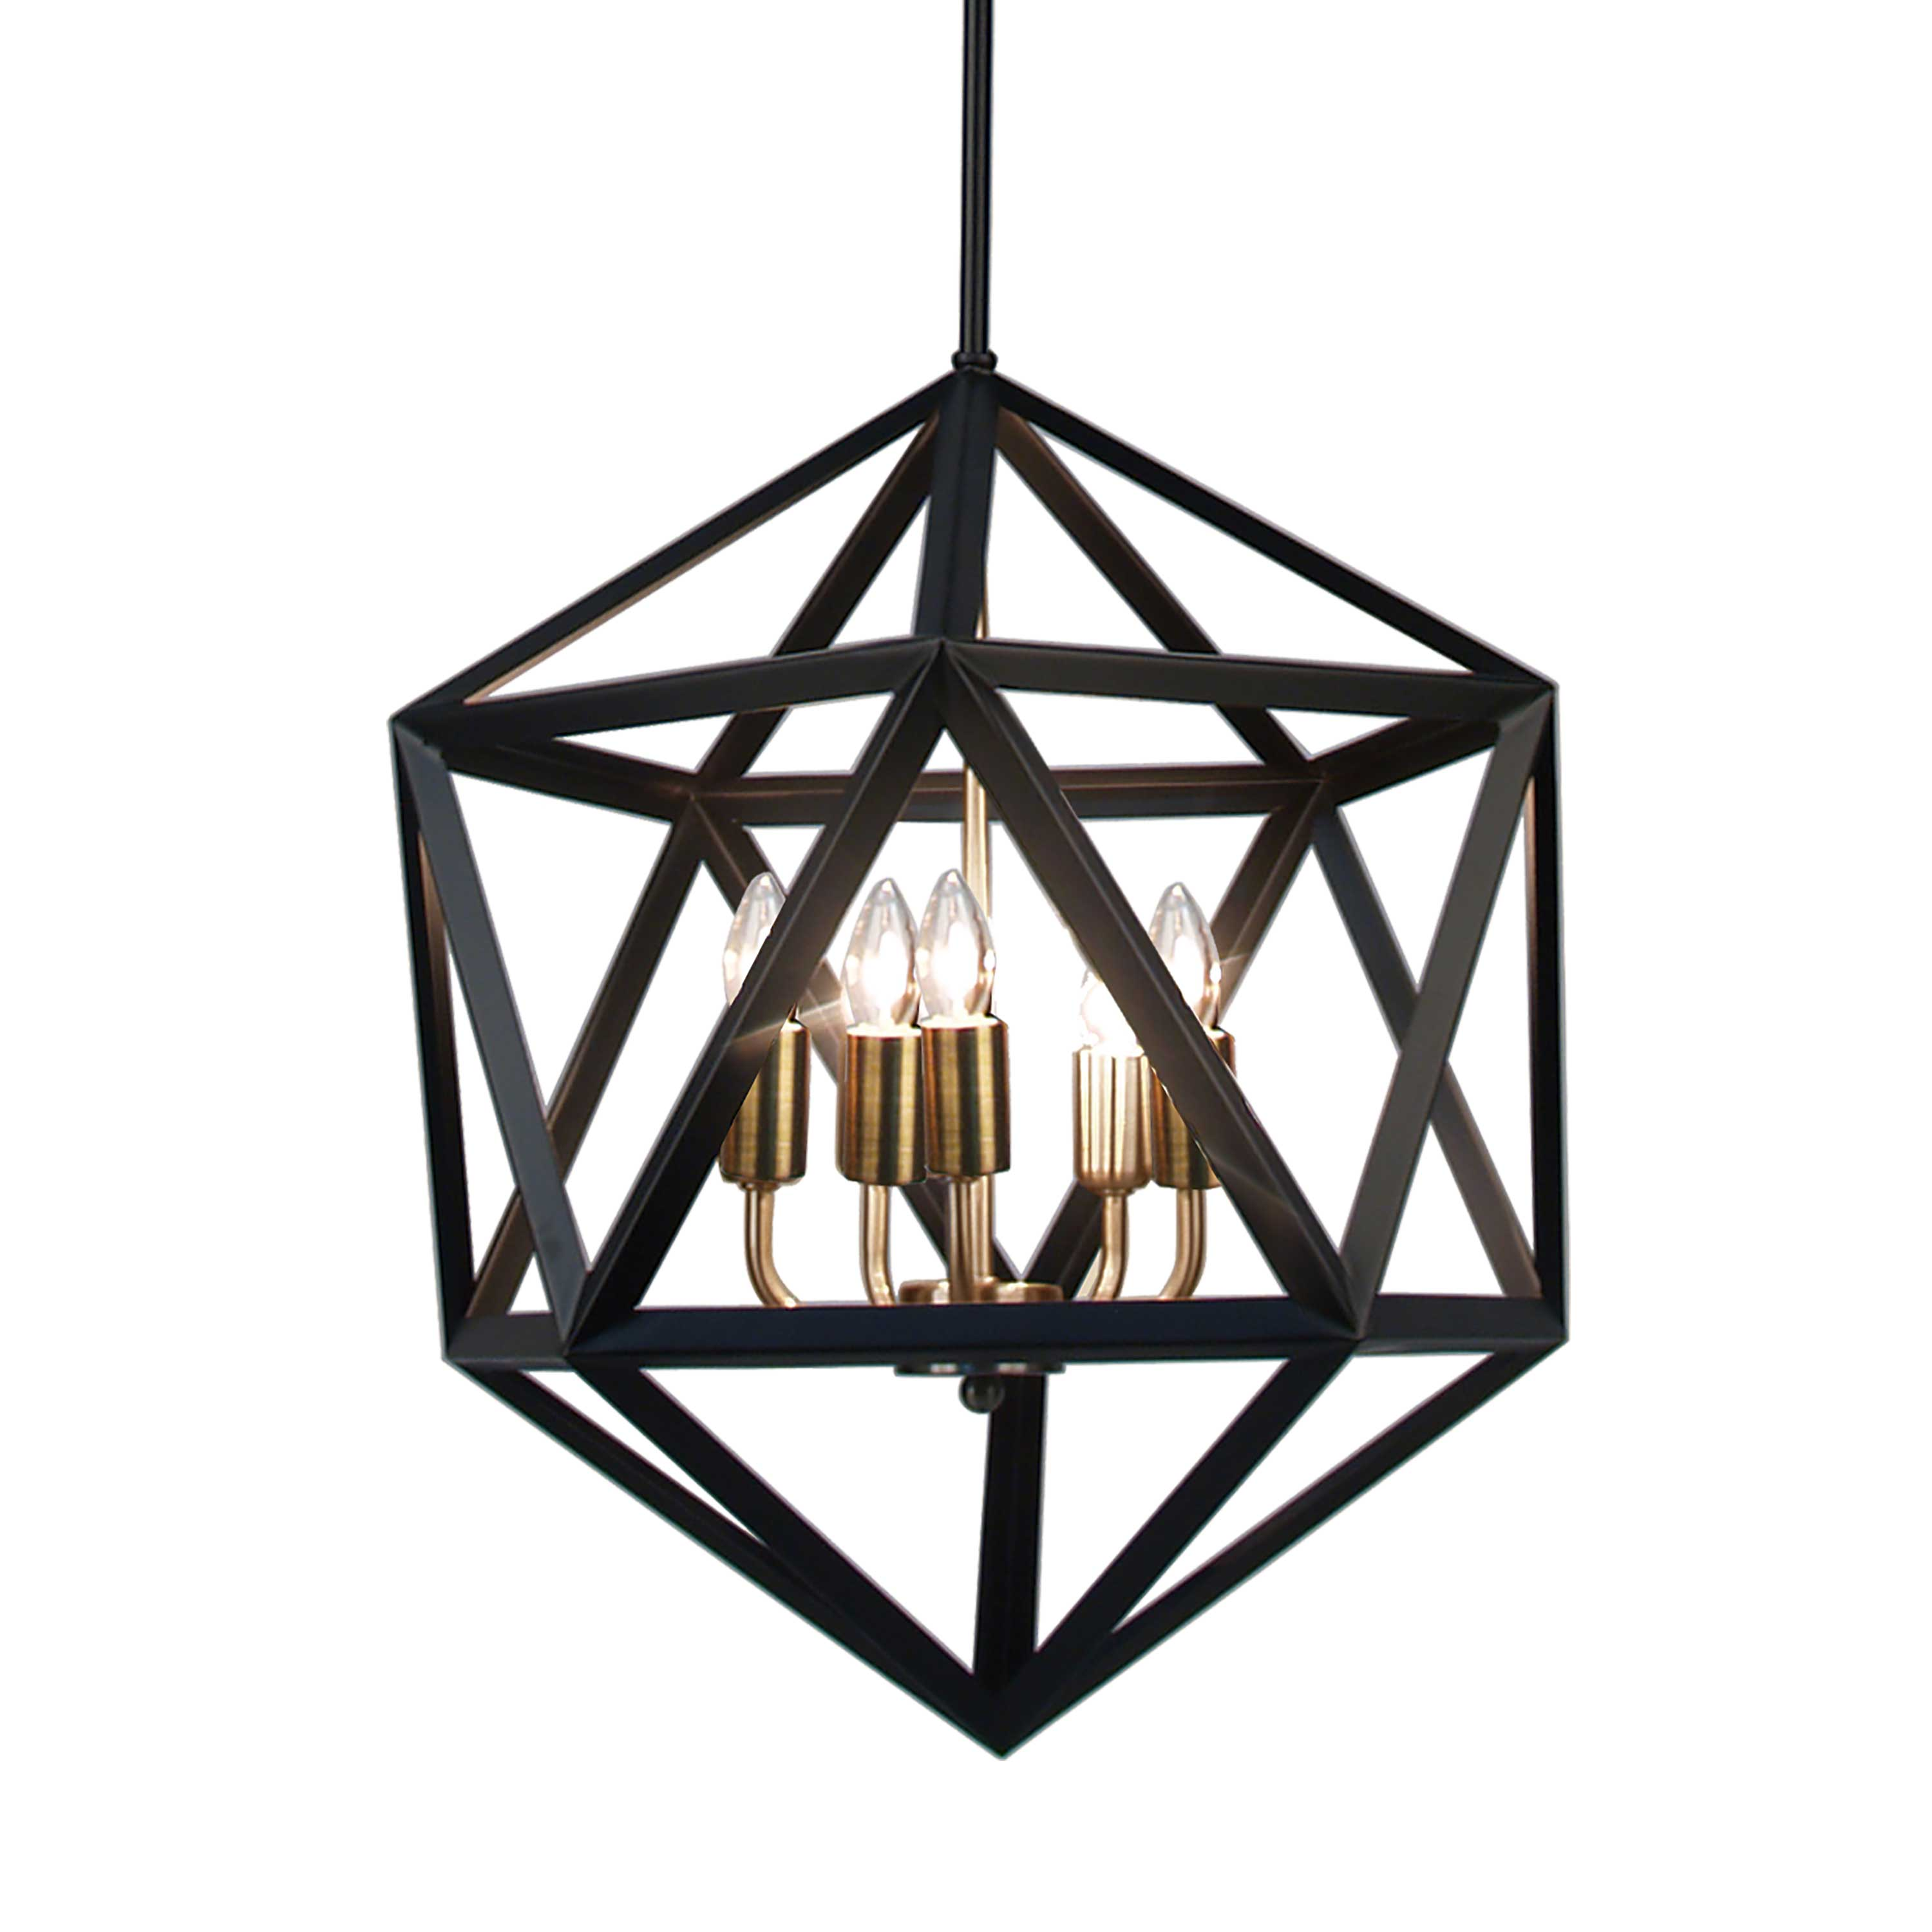 With its arresting design aesthetic, the Archello line of lighting brings a striking note to your home.  The caged construction contrasts a matte black metal frame exterior with a faceted, diamond-like geometry against the reflection of the lights on polished chrome or antique brass finish fixtures inside.  With a look that is inspired by classical designs yet neither entirely old nor new, Archello lighting will become a focal point of both contemporary and traditional design schemes and will create an especially compelling note in a minimalist setting. Available as a flush mount or chandelier.